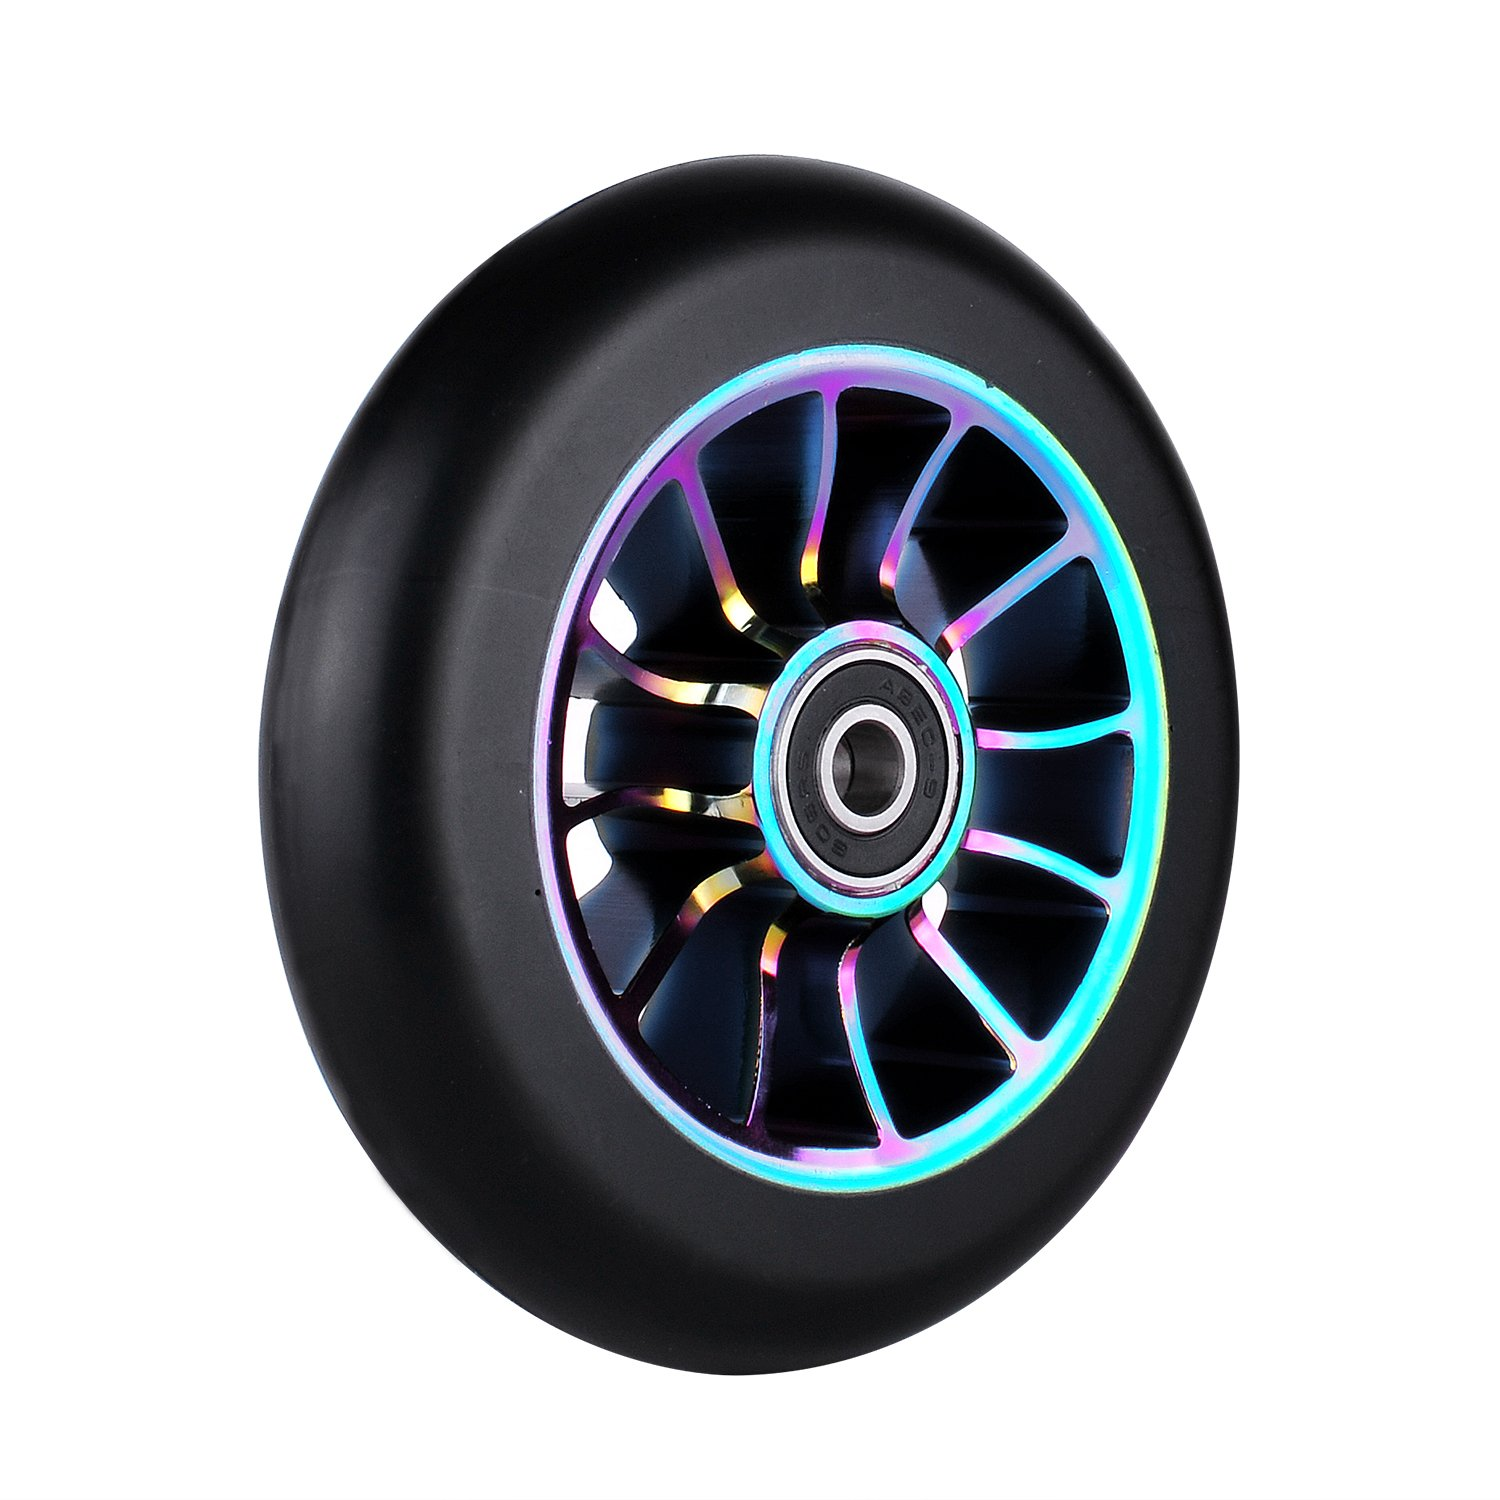 110mm Single 1 Pro Scooter Wheel with Abec 9 Bearings Fit for MGP/Razor/Lucky Pro Scooter -- 1PCS(Size:110mm) Unuber